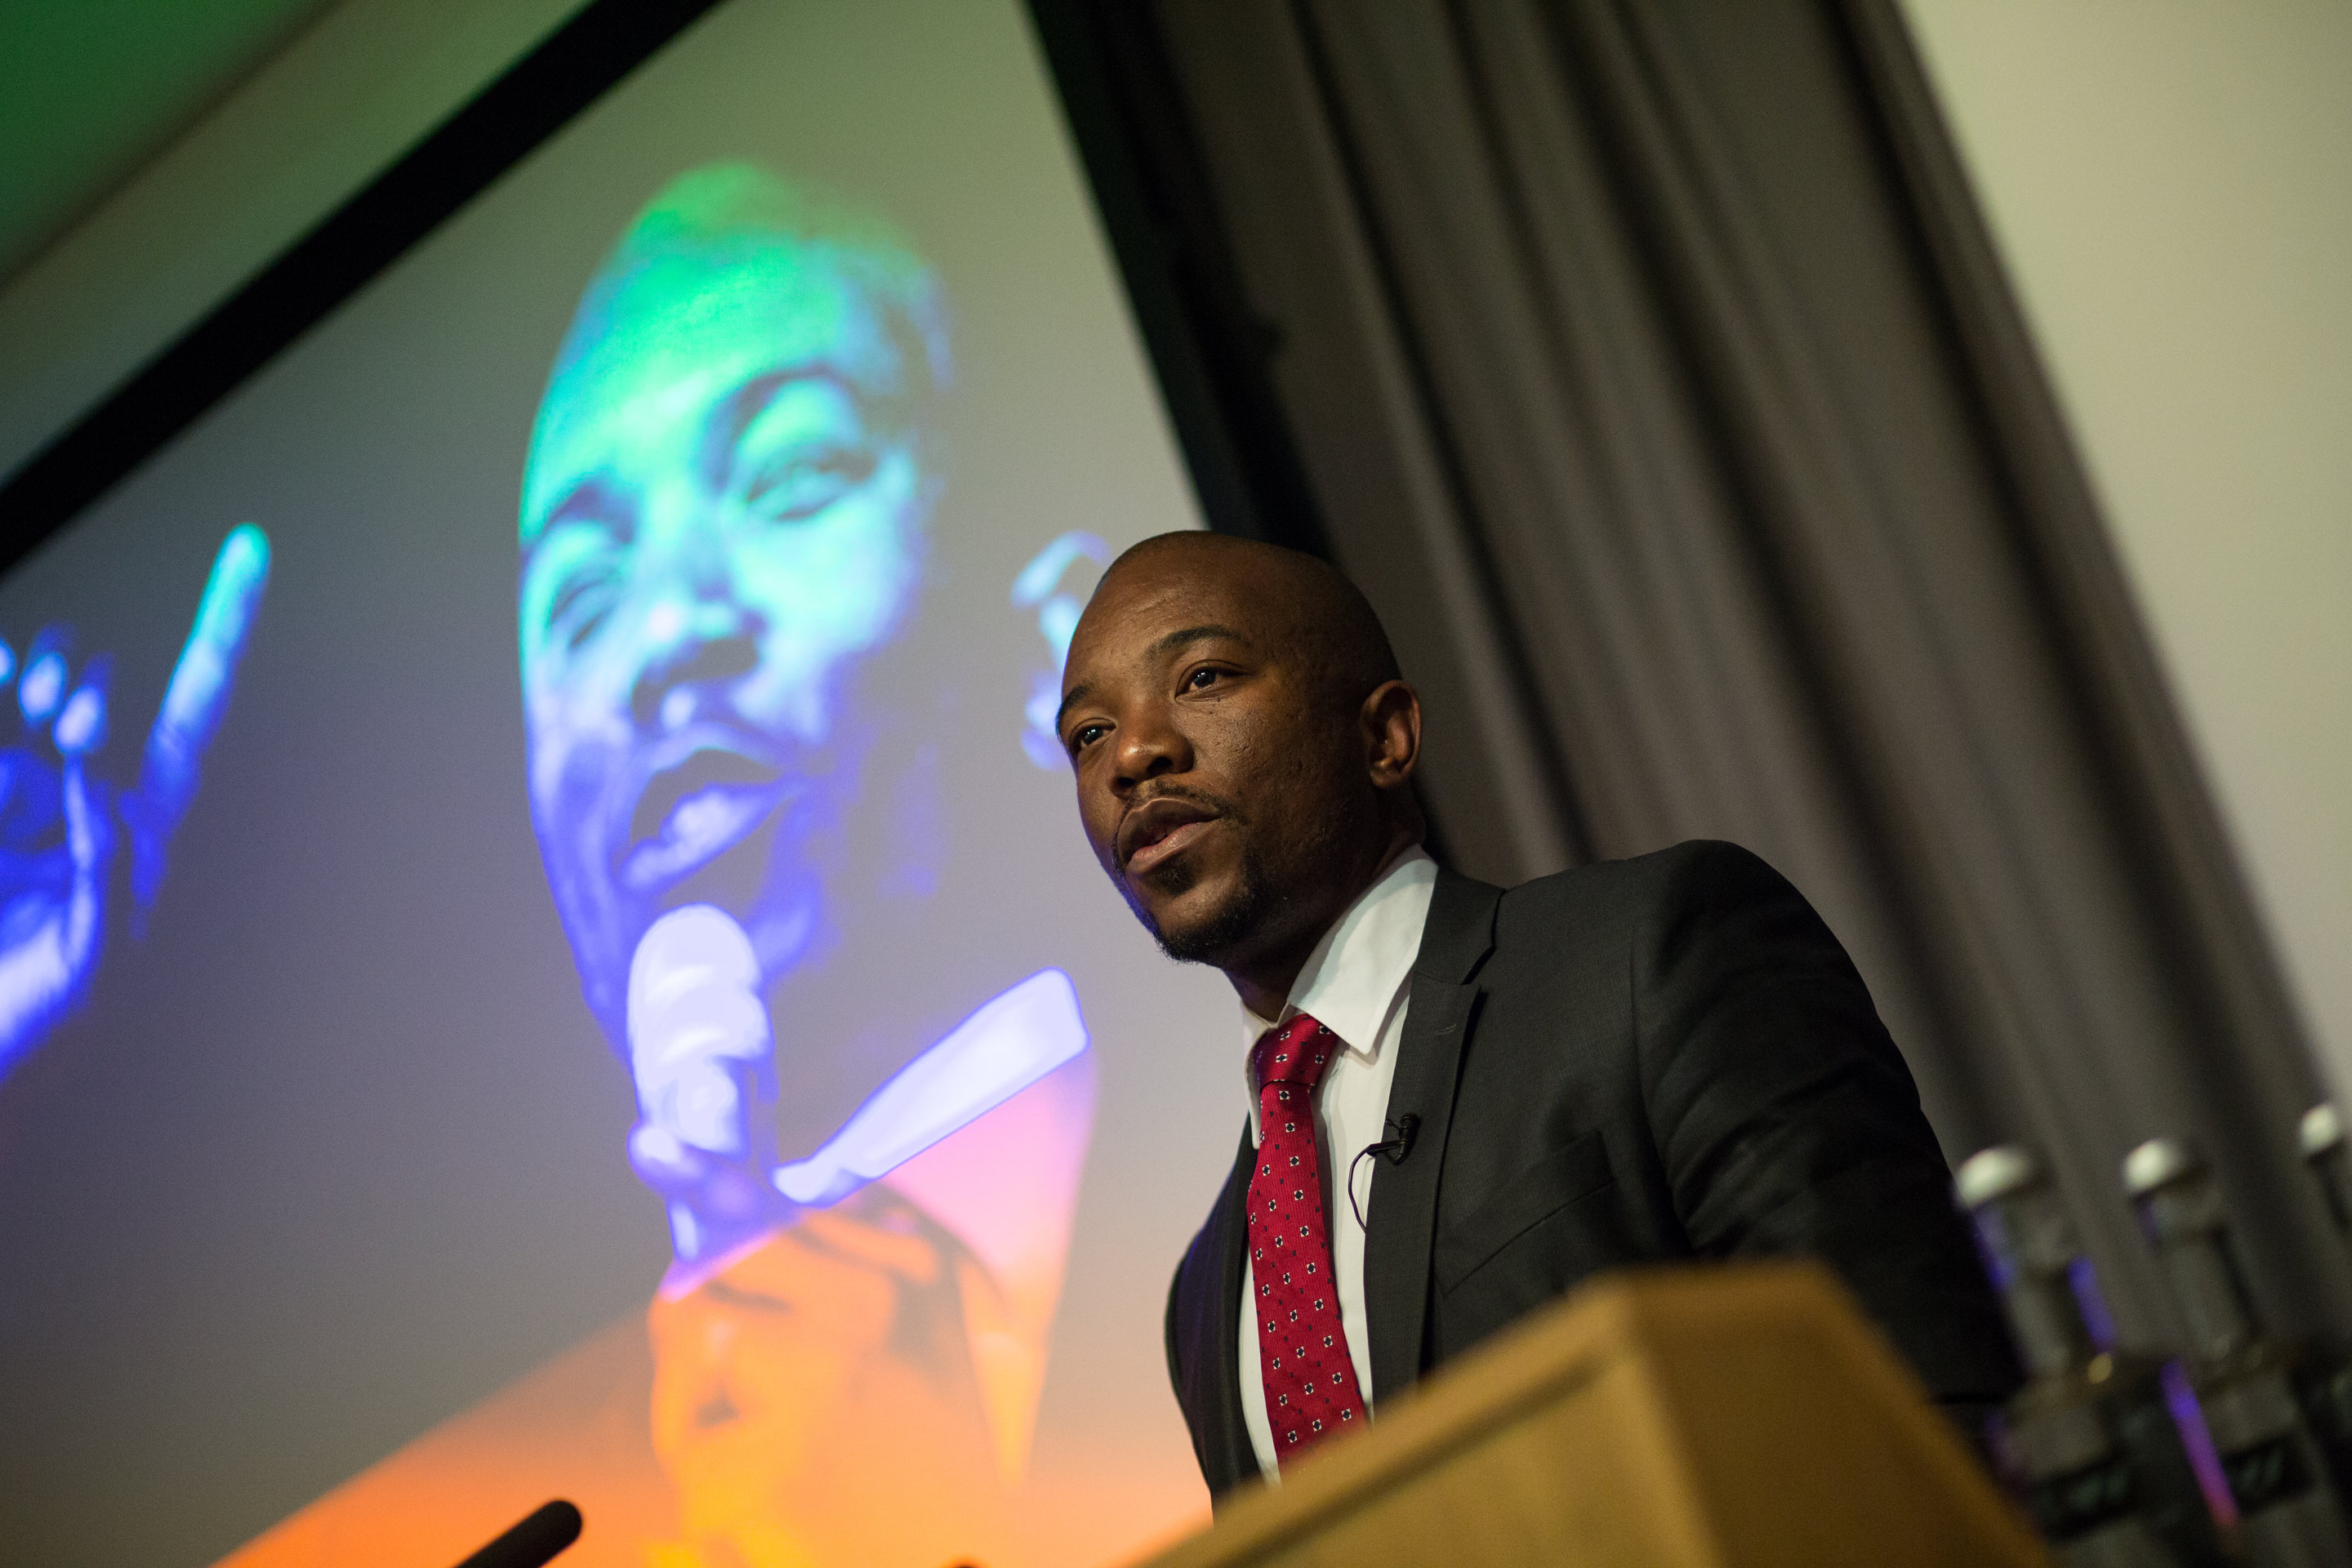 The Democratic Alliance's leader Mmusi Maimane speaking at RAS in London last year. Credit: Joyce Nicholls/RAS.